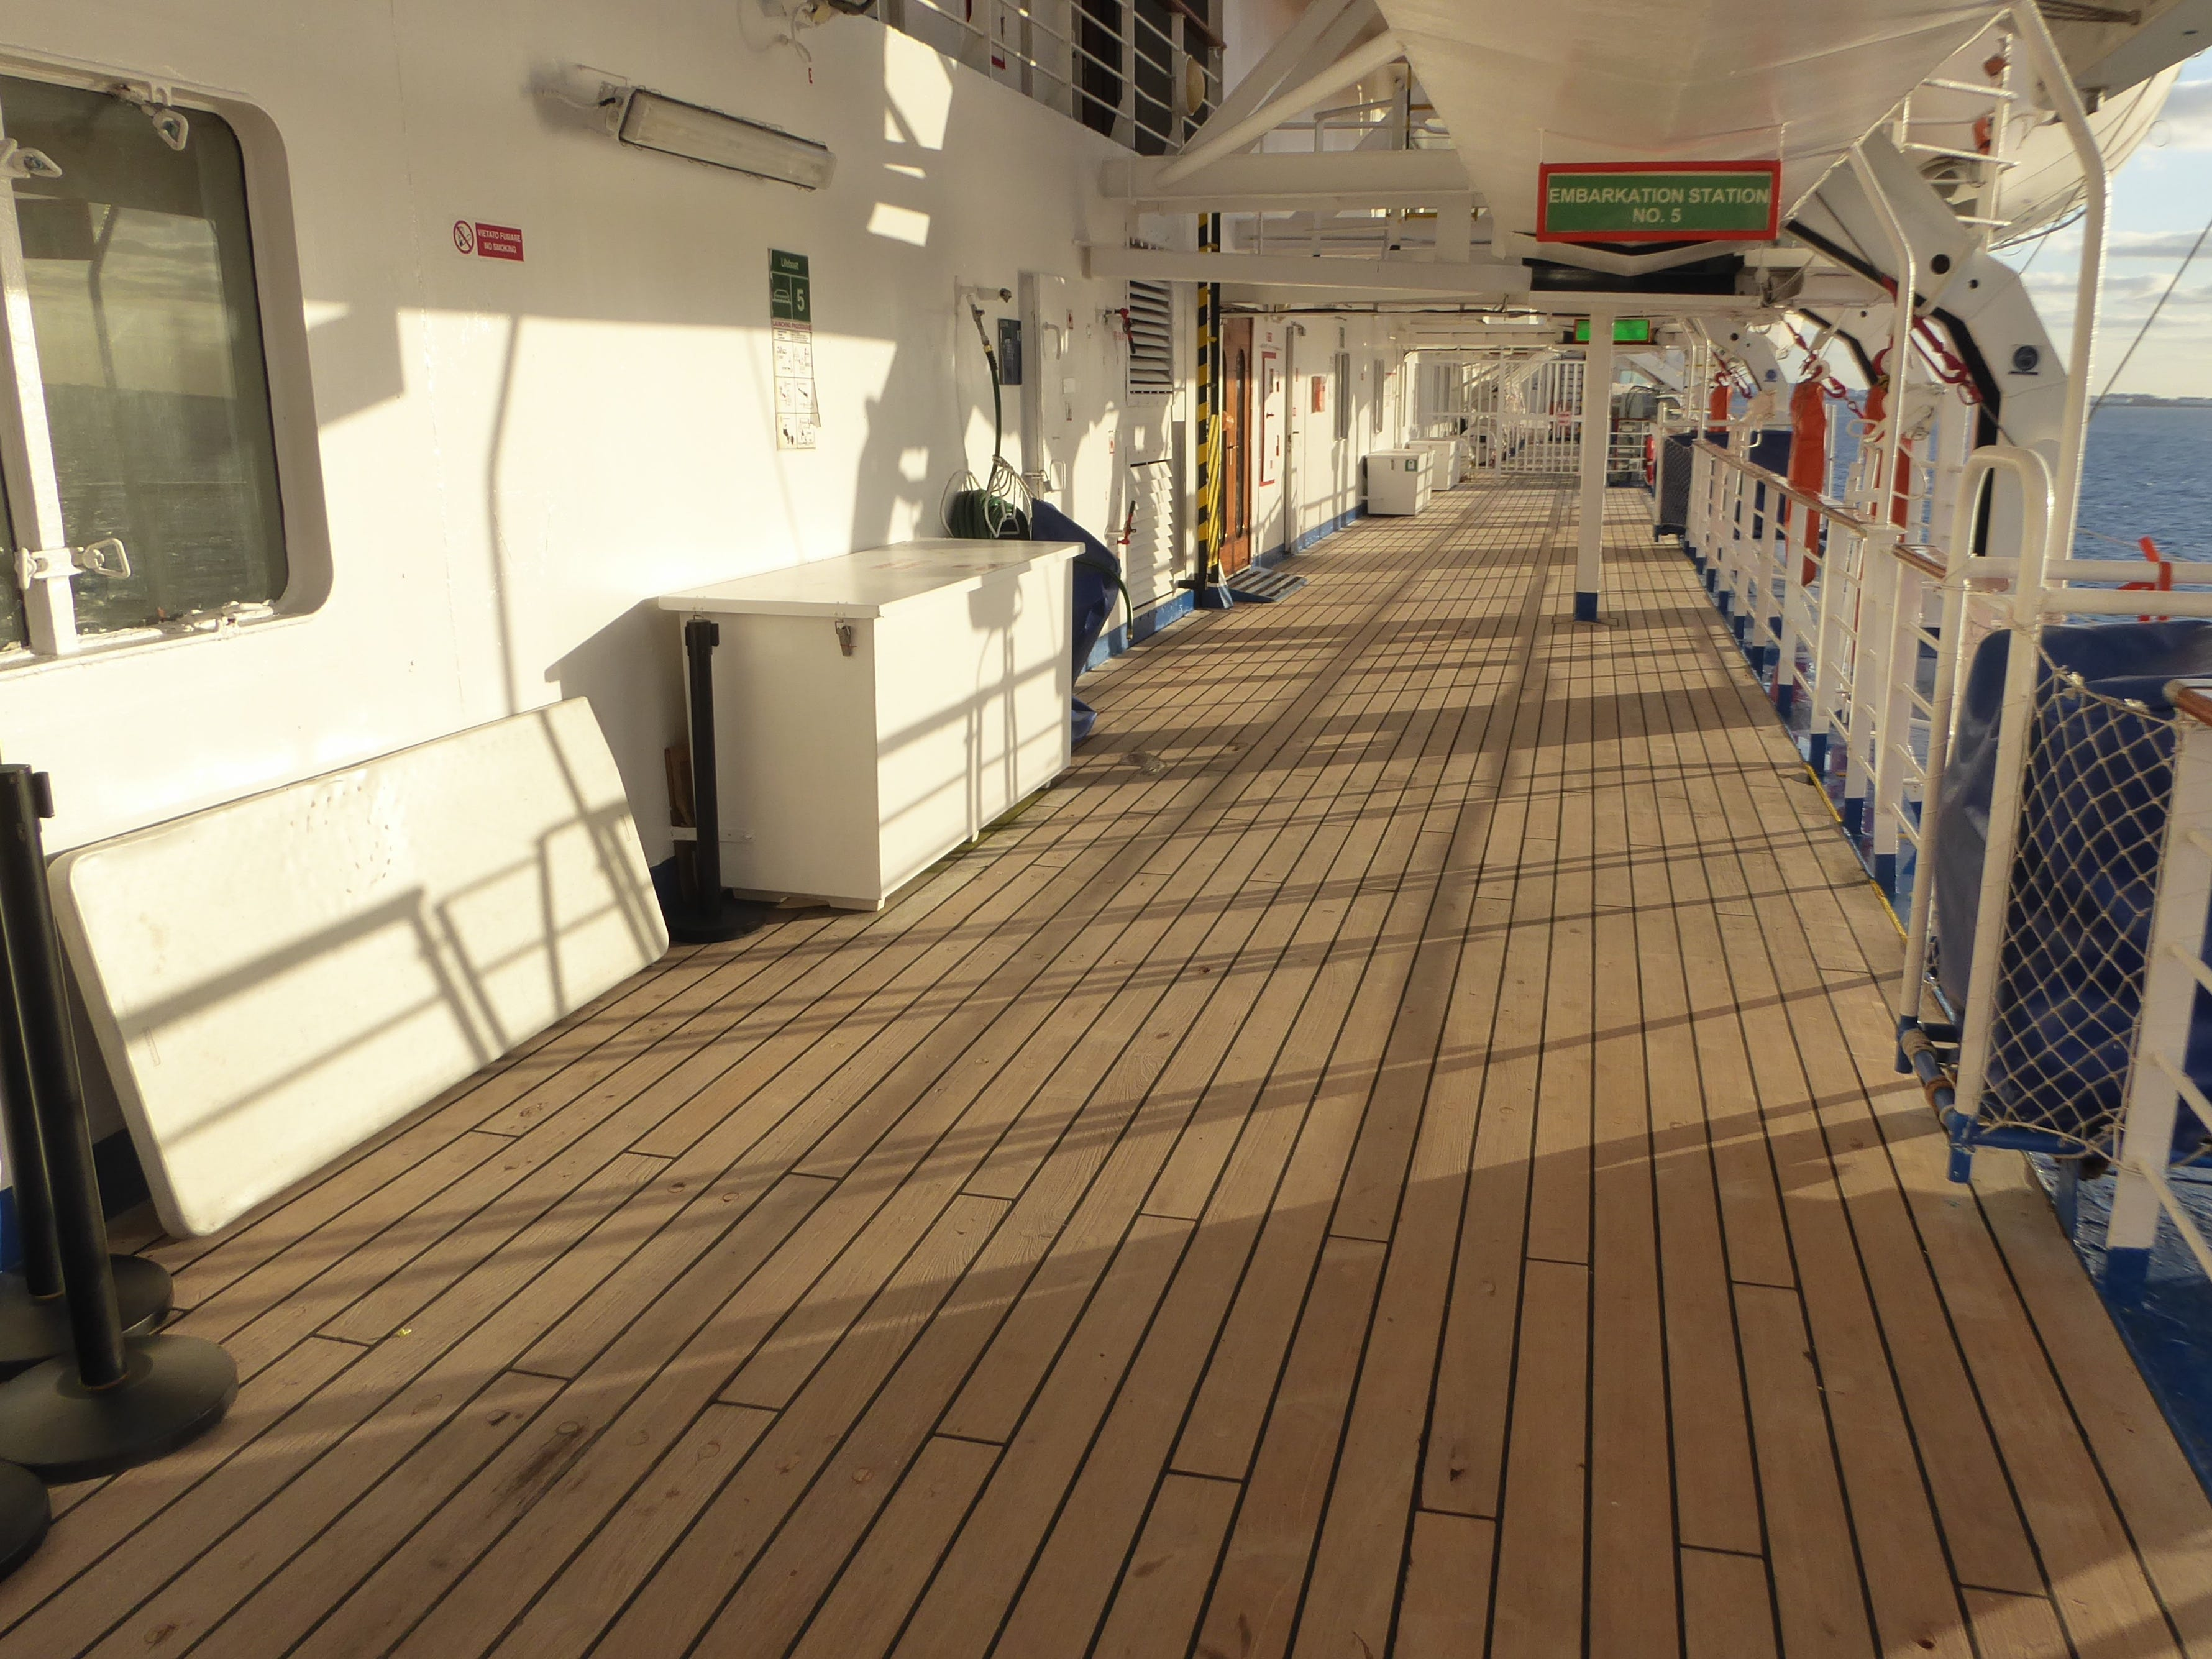 The exterior portion of Luna Deck (10) begins with finite teak-lined promenades on either side of the ship.